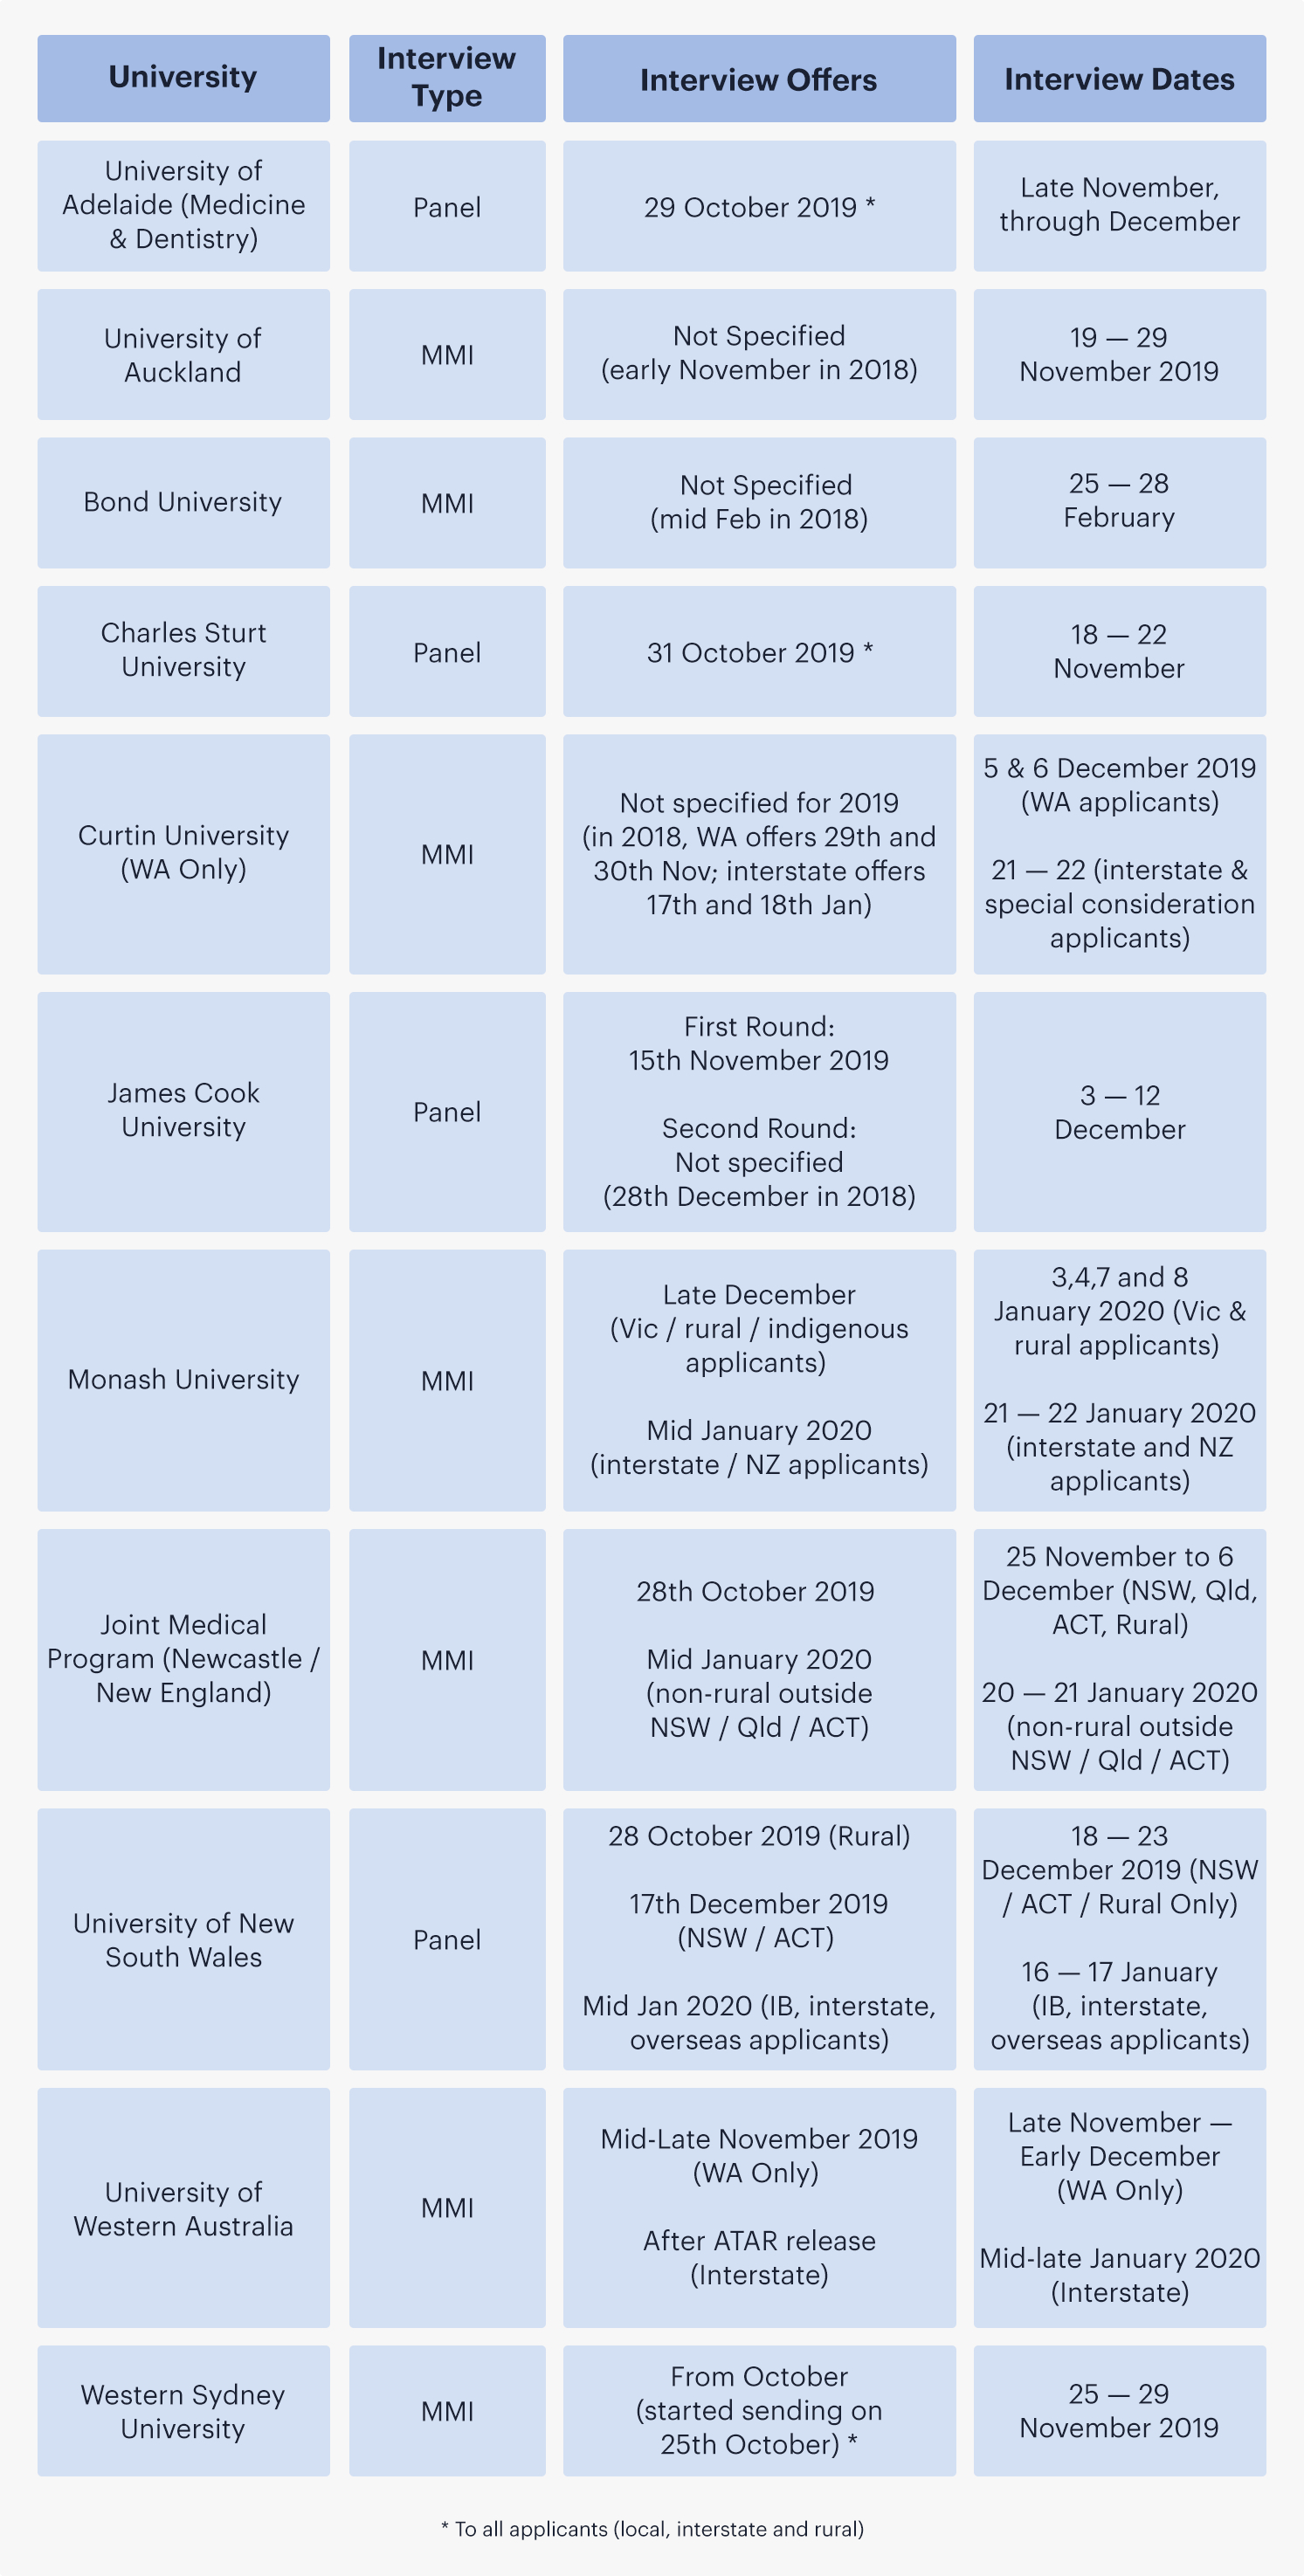 A table showing the list of medical schools in Australia and New Zealand, with their interview types, interview offer dates and interview dates.